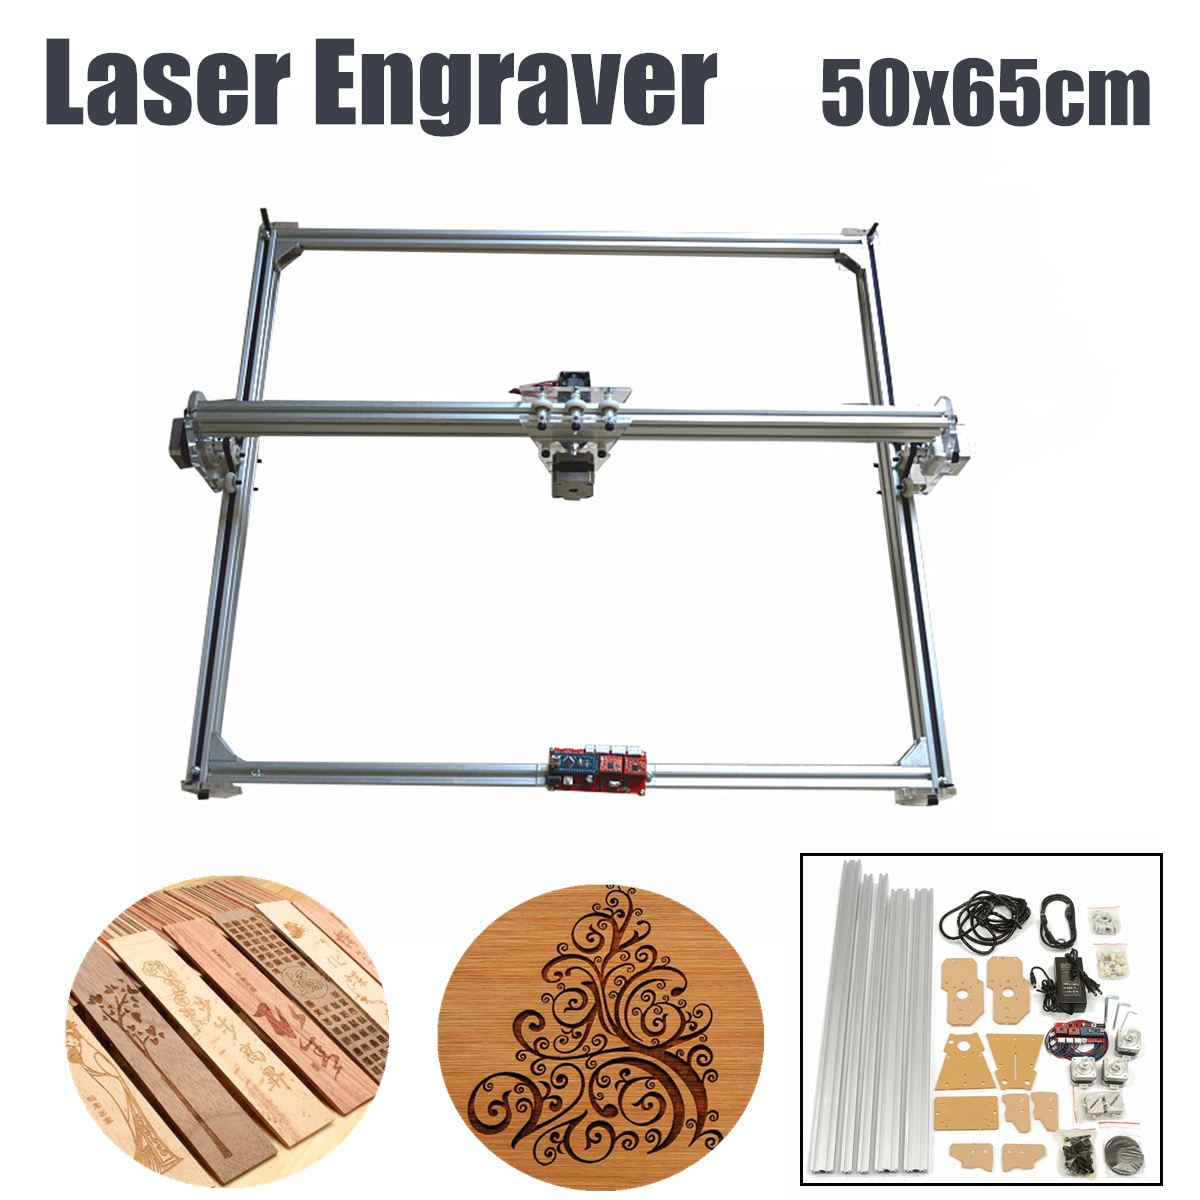 1Set 65x50cm 100mw-5500mw DIY Desktop Mini Laser Cutting/Engraving Engraver Machine DC 12V Wood Cutter/Printer/Power Adjustable